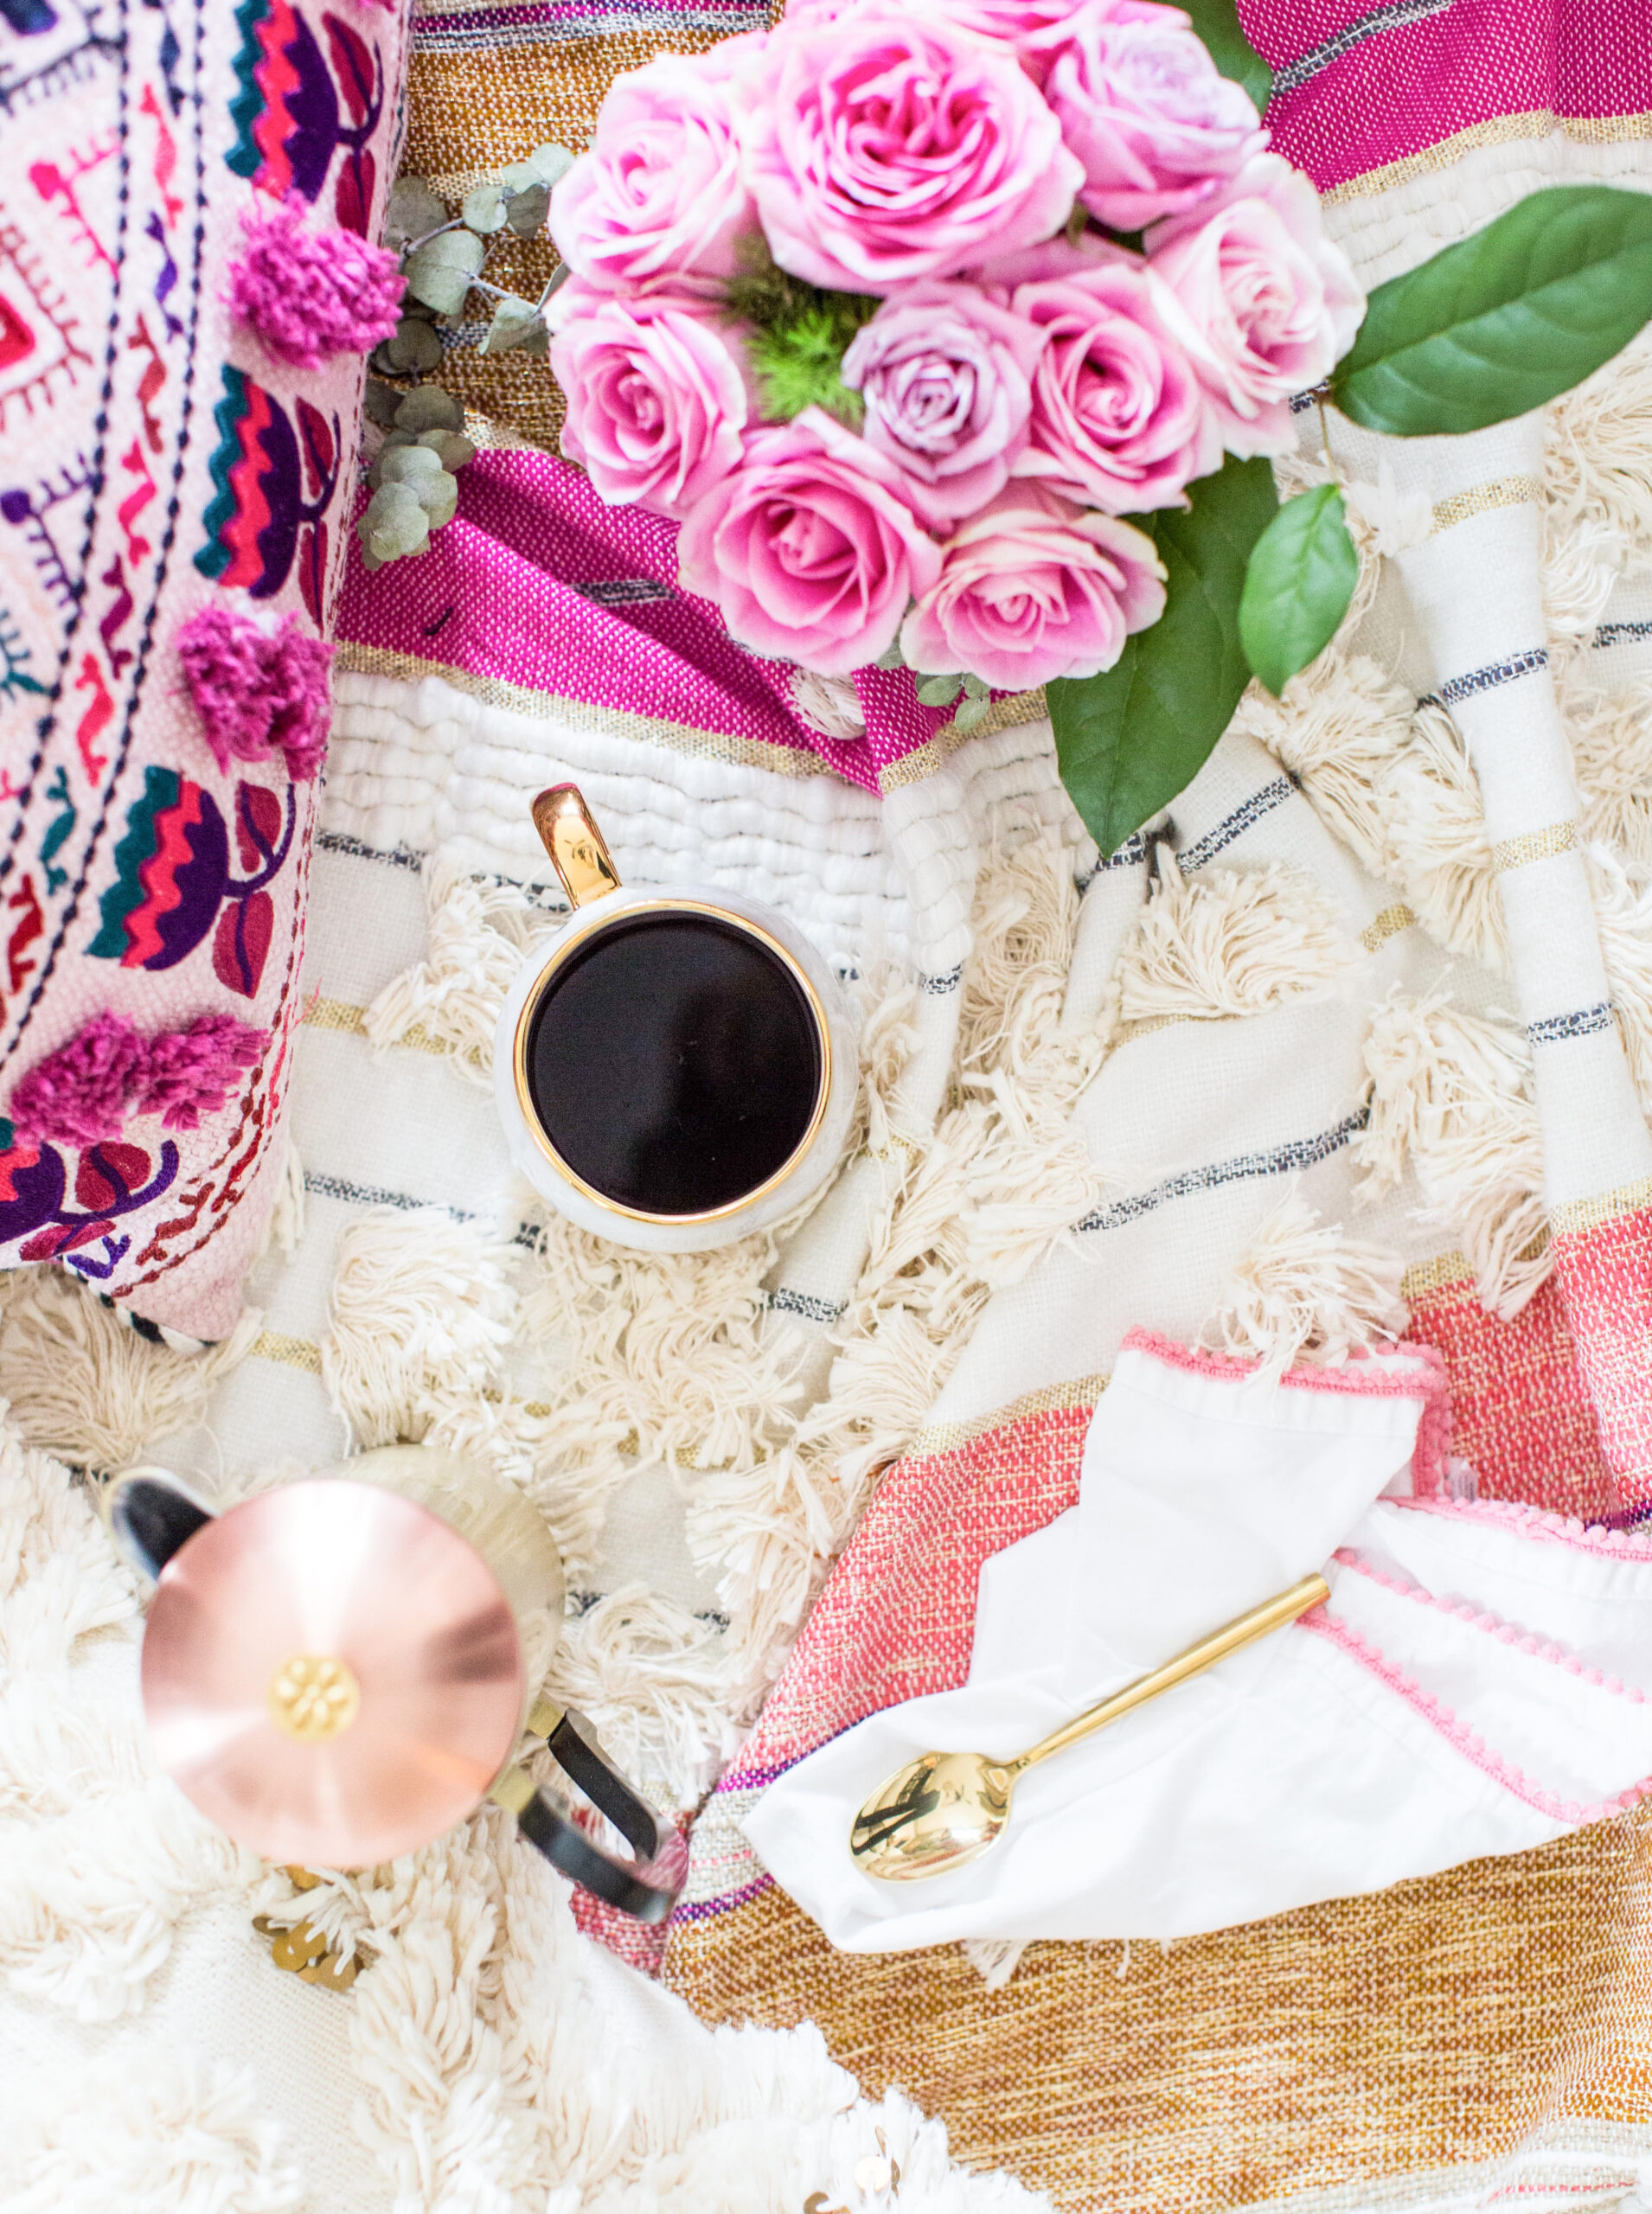 Little Love Notes + Valentine's Day Weekend Plans